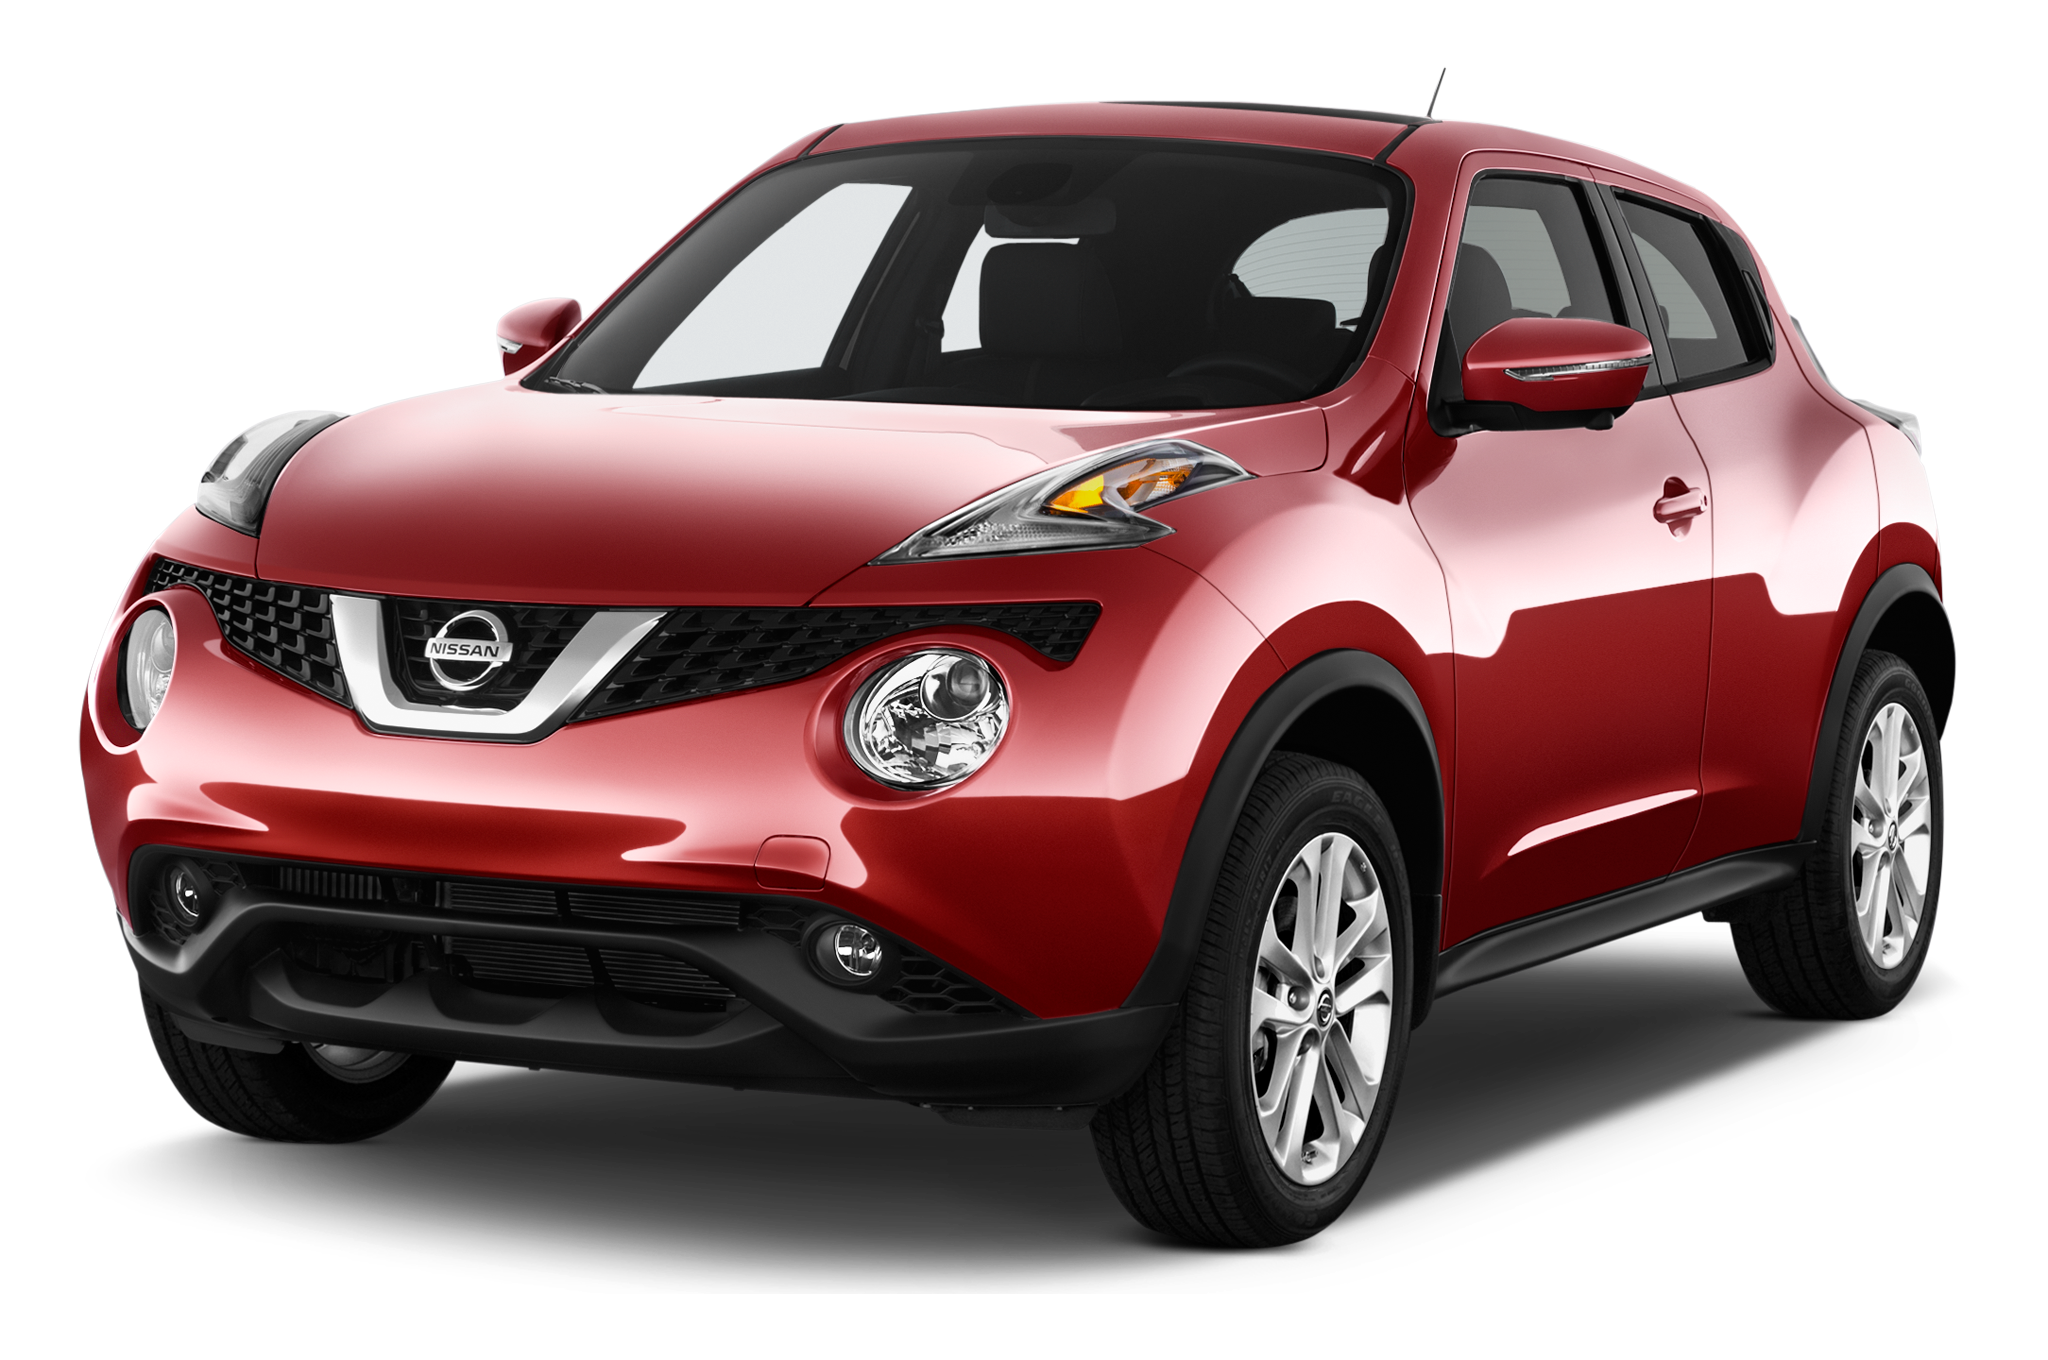 2015 nissan juke teased before 2014 geneva show. Black Bedroom Furniture Sets. Home Design Ideas